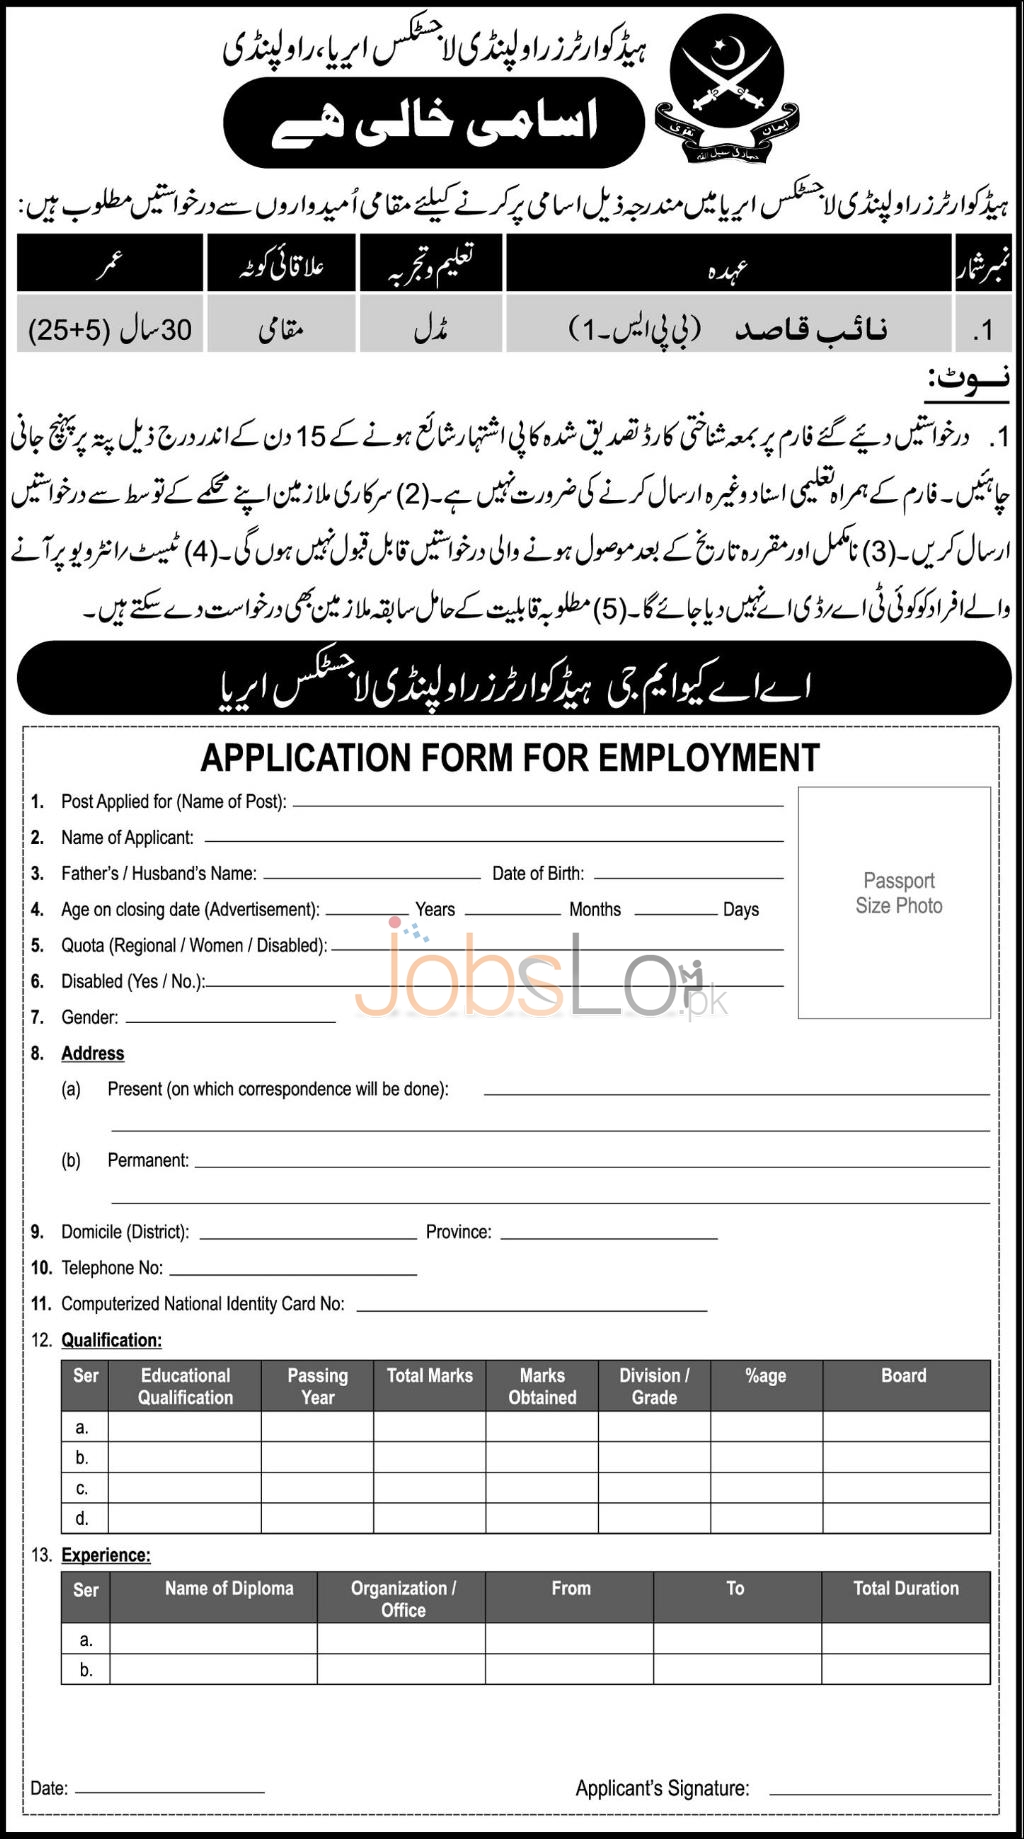 Situations Vacant in Pakistan Army Rawalpindi GHQ 2016 Application Form Latest